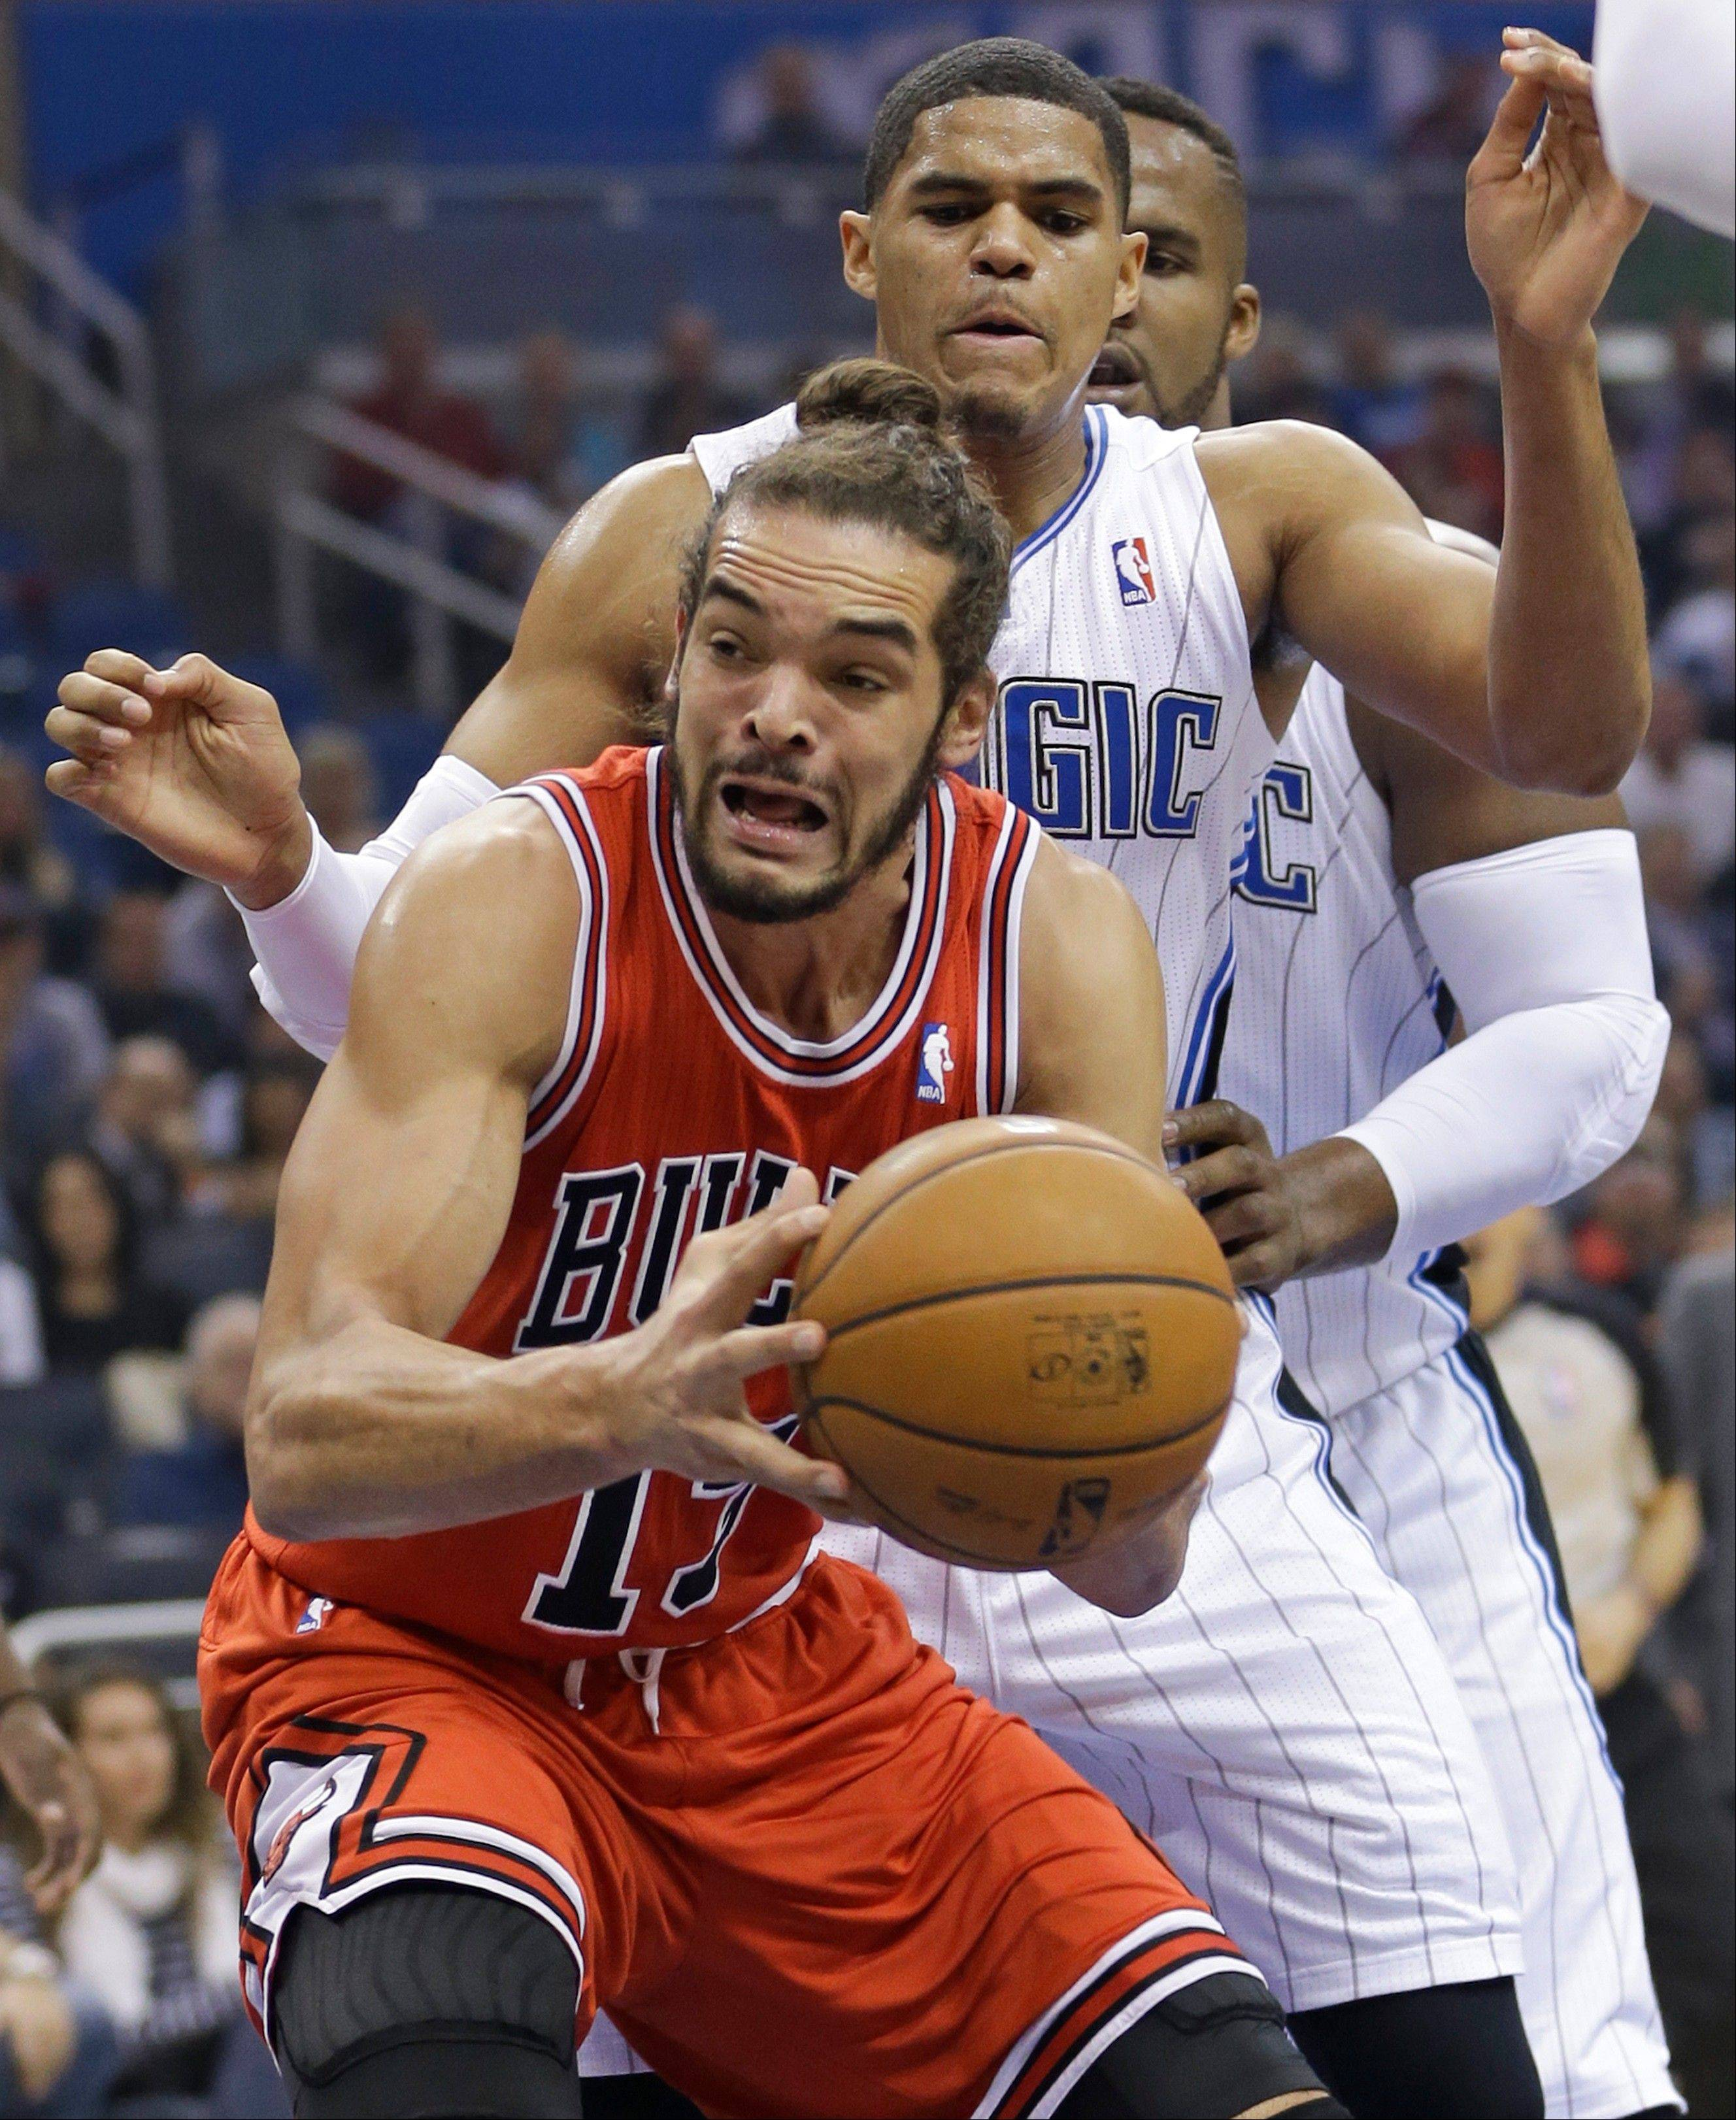 Chicago Bulls' Joakim Noah, front, looks to go up for a shot off a rebound in front of Orlando Magic's Tobias Harris during the first half Wednesday in Orlando. The Bulls beat the Magic 128-125 in triple overtime.